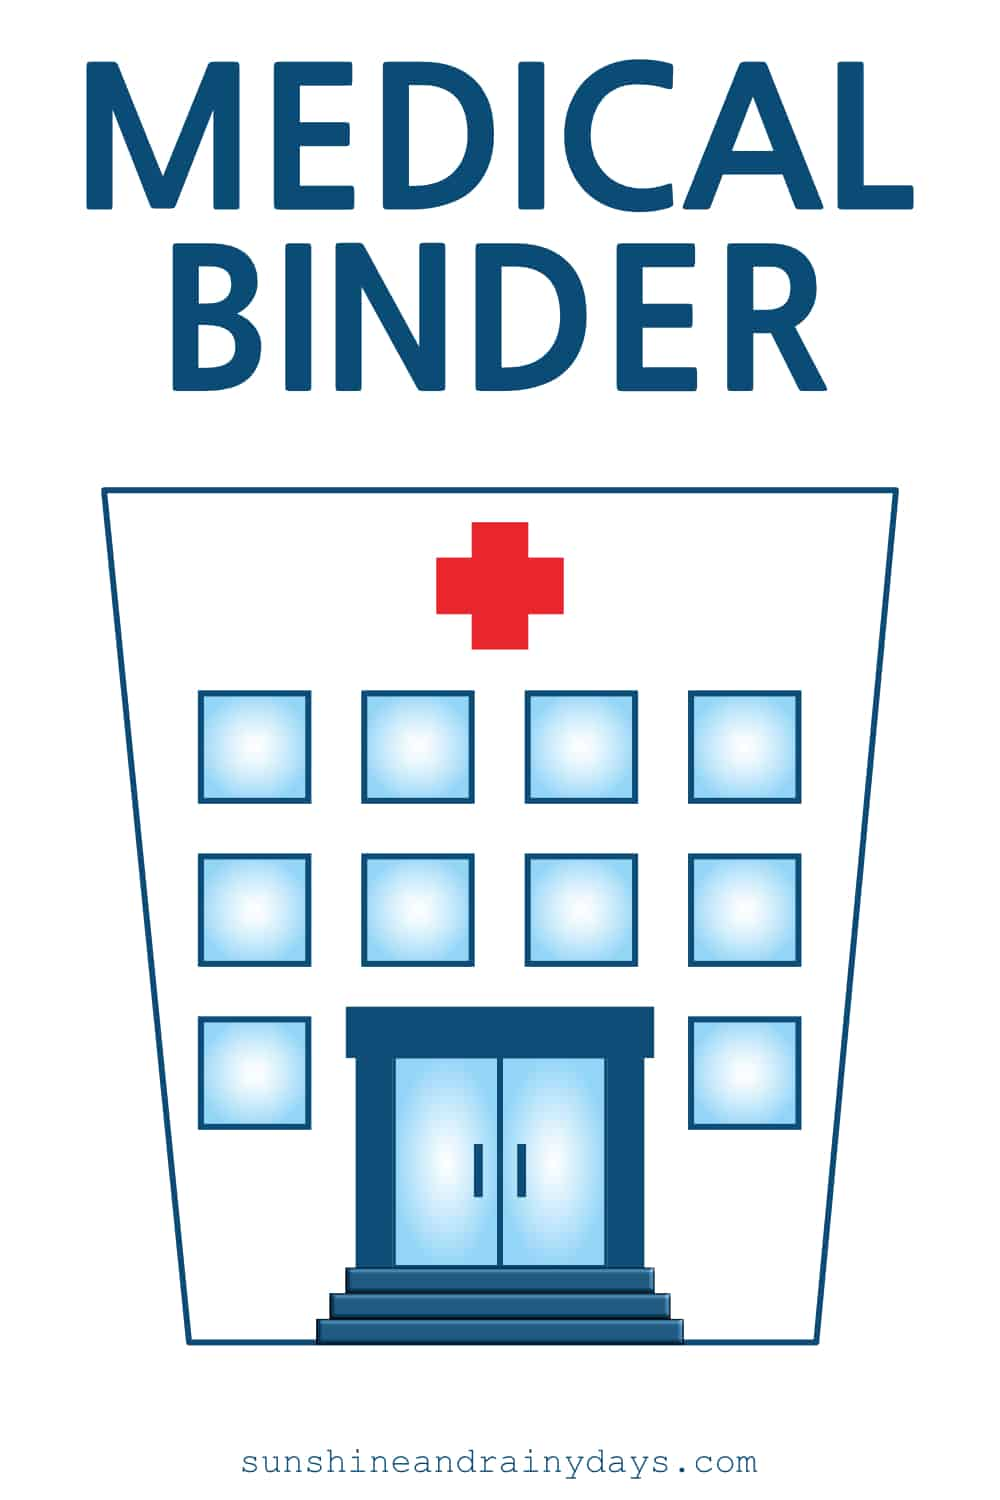 Take control of your health using Medical Binder Printables!